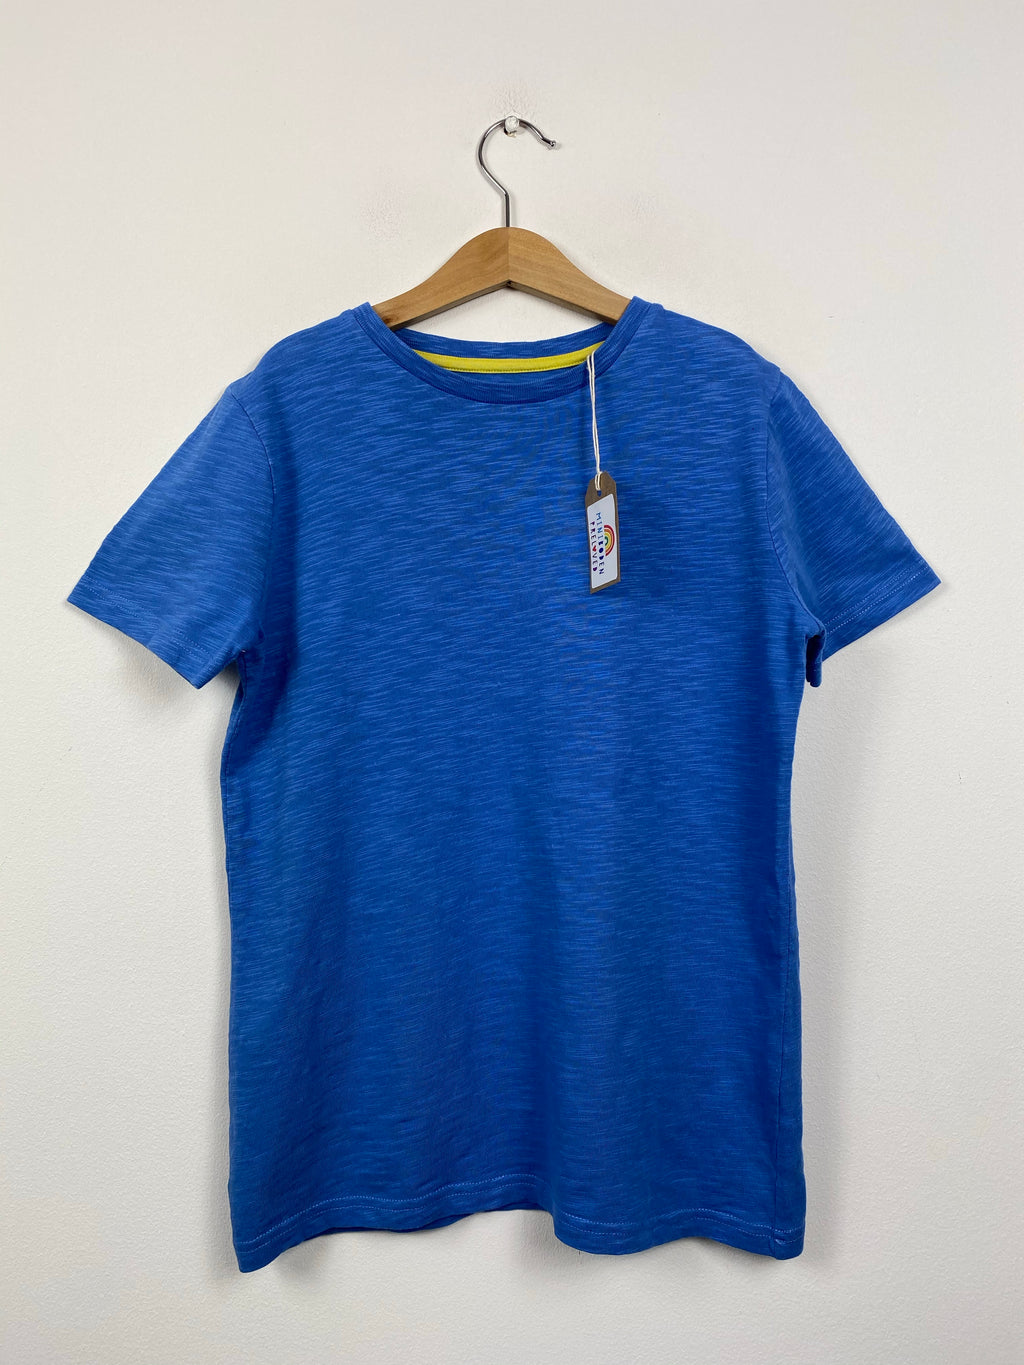 Classic Blue T-Shirt (9-10 Years)